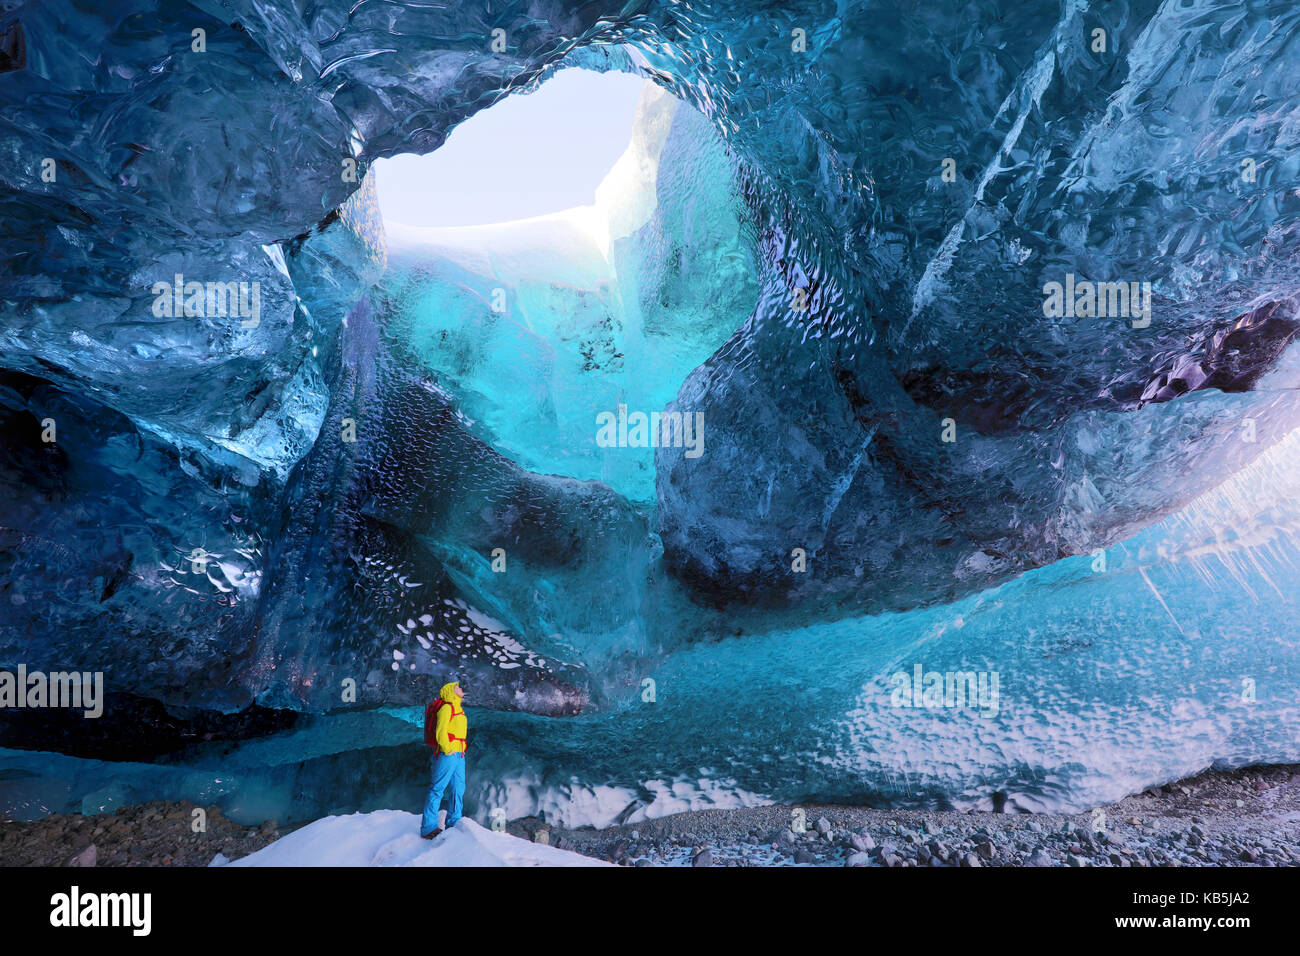 Inside ice cave under the Vatnajokull Glacier, with cave guide looking up to hole in cave roof, near Jokulsarlon, - Stock Image